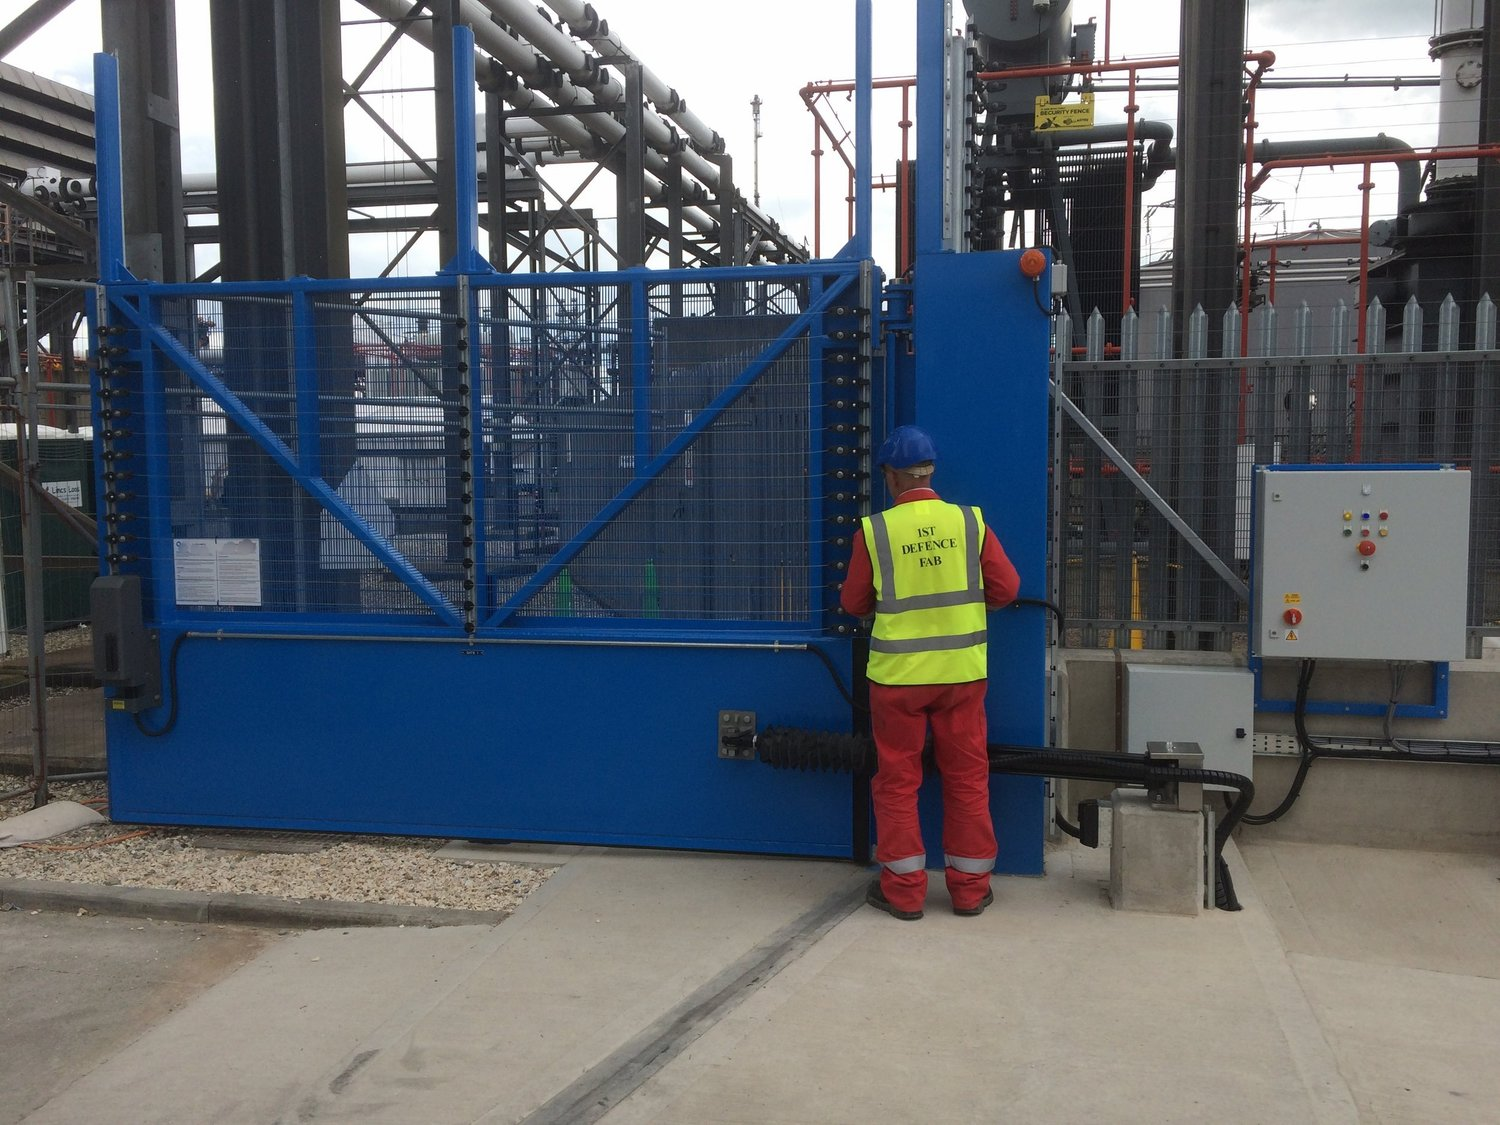 1st defence fabrications Ltd automatic double flood gate